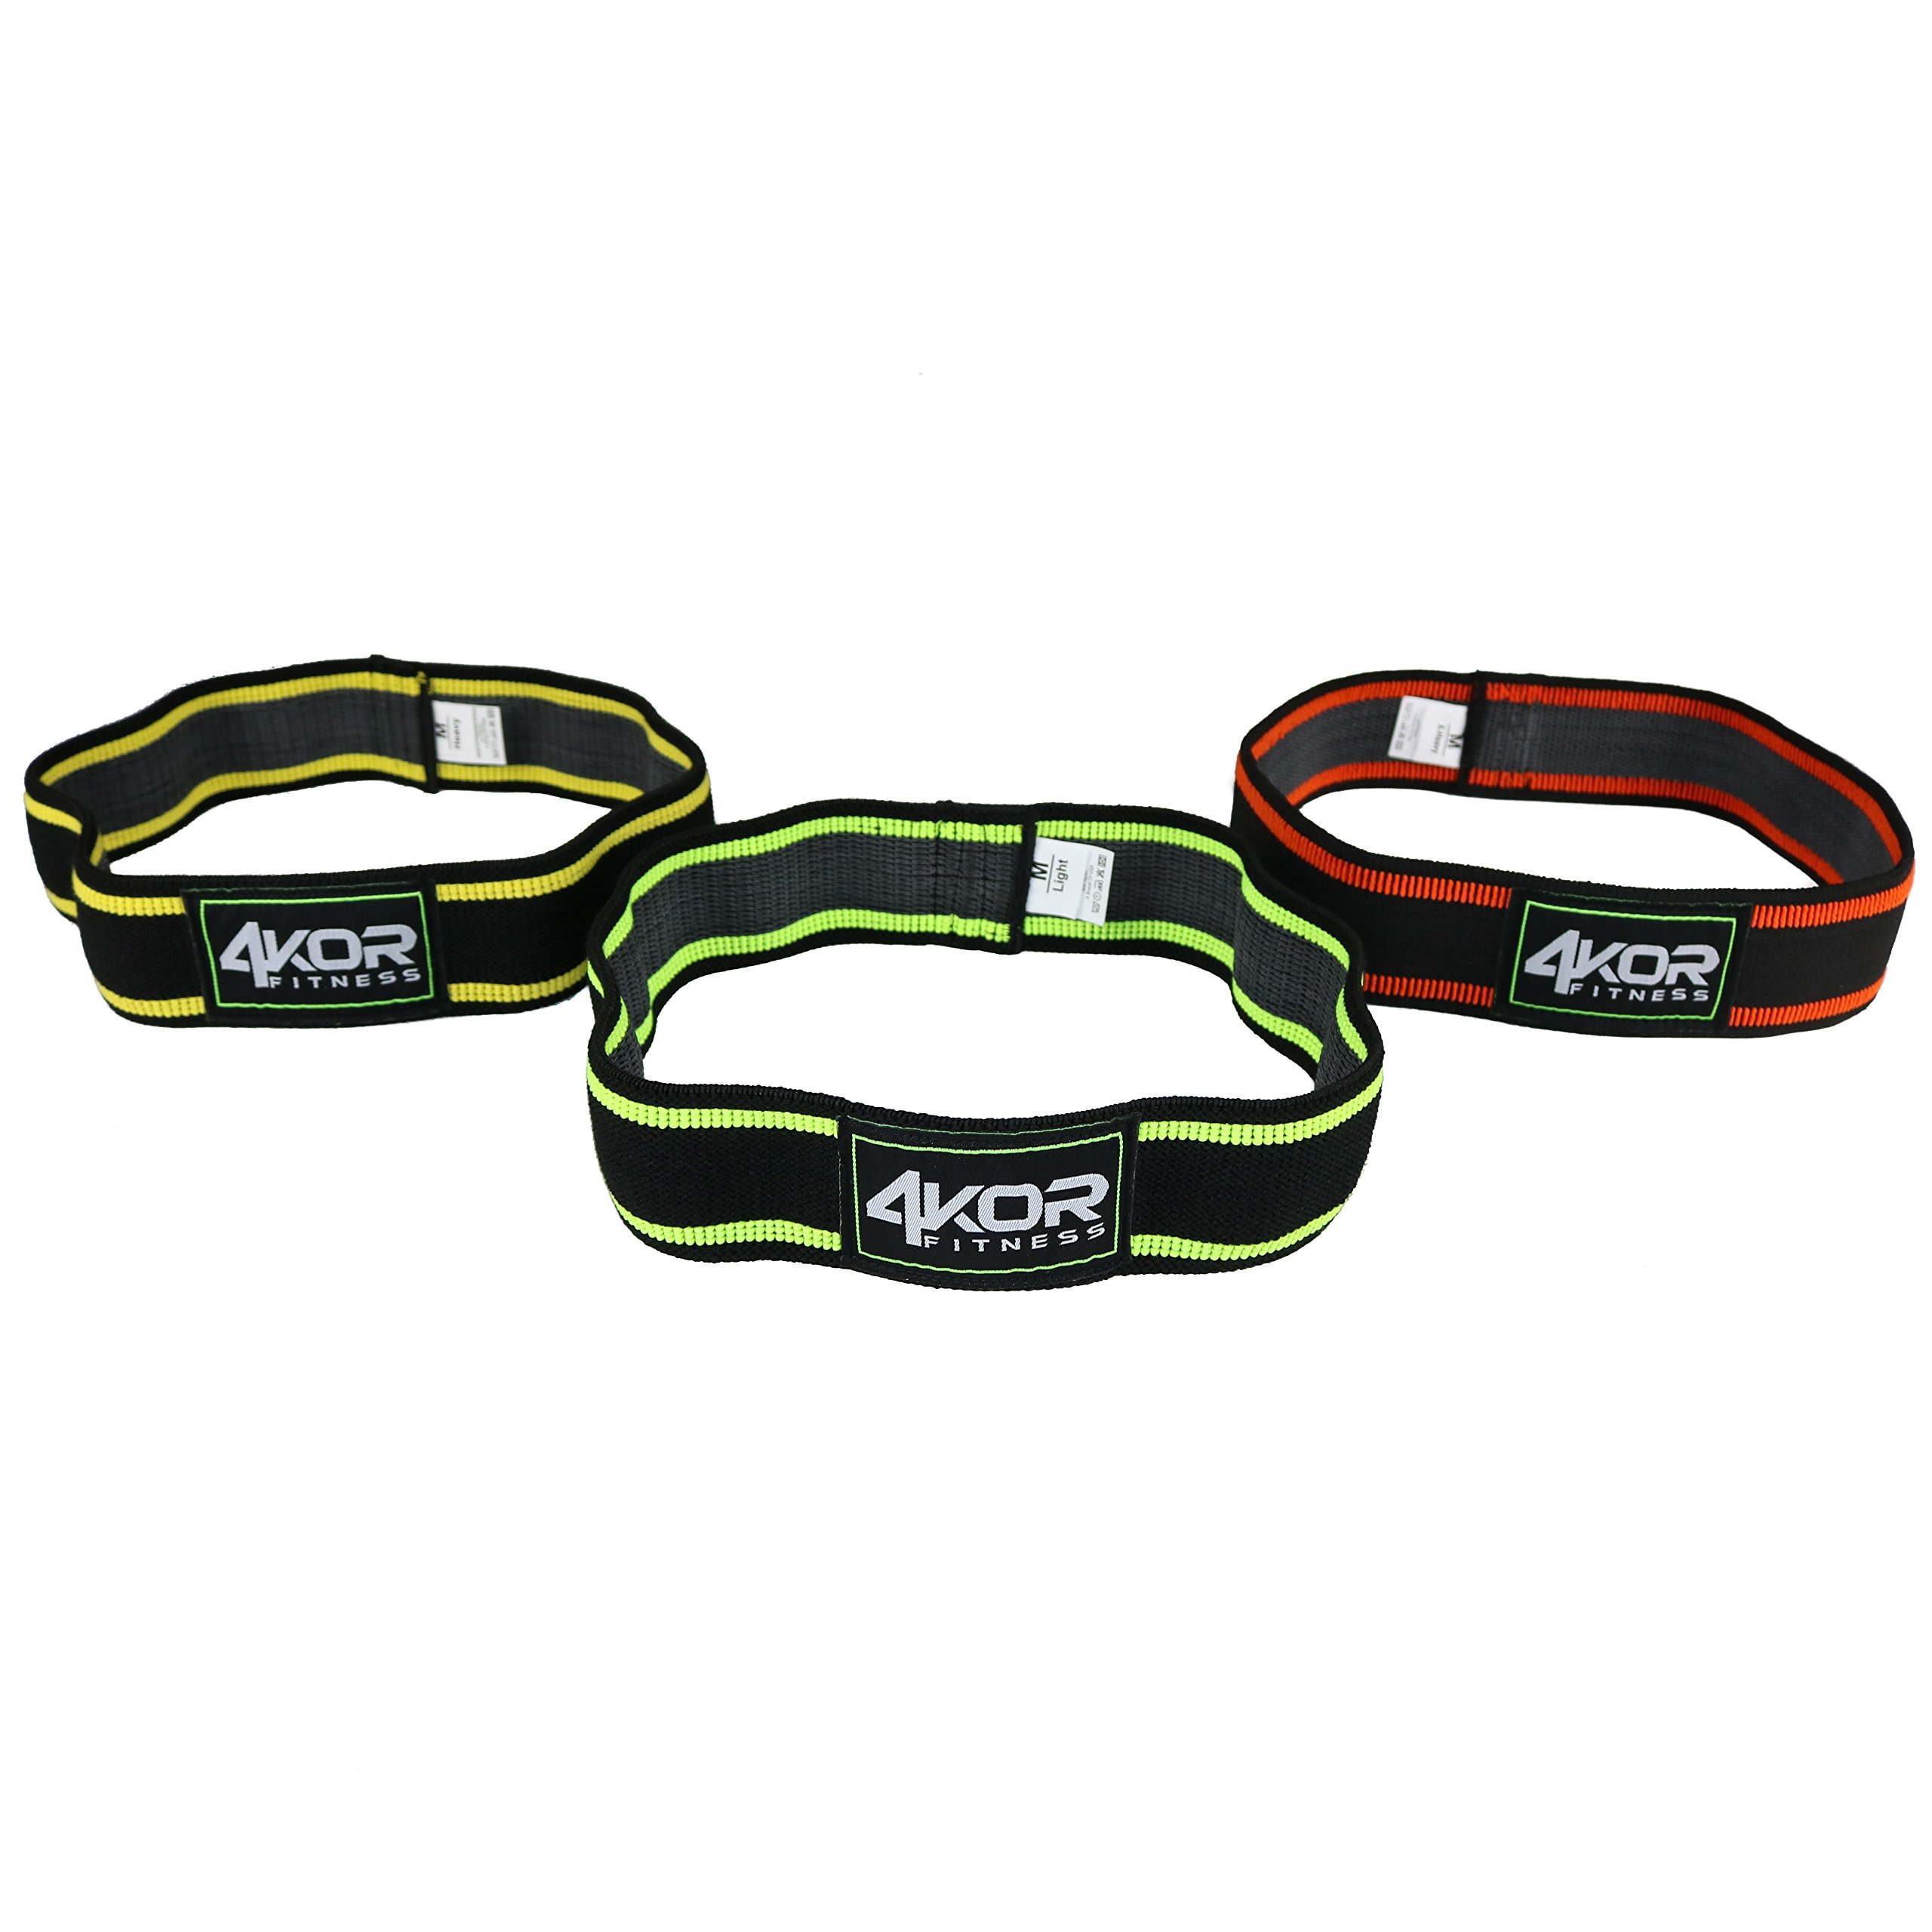 4KOR Fitness Resistance Loop Band Set, Perfect for Crossfit, Yoga, Physical Therapy, and Booty Building (2 Inch Hip Bands 3 Piece Set/Grippy/Medium)